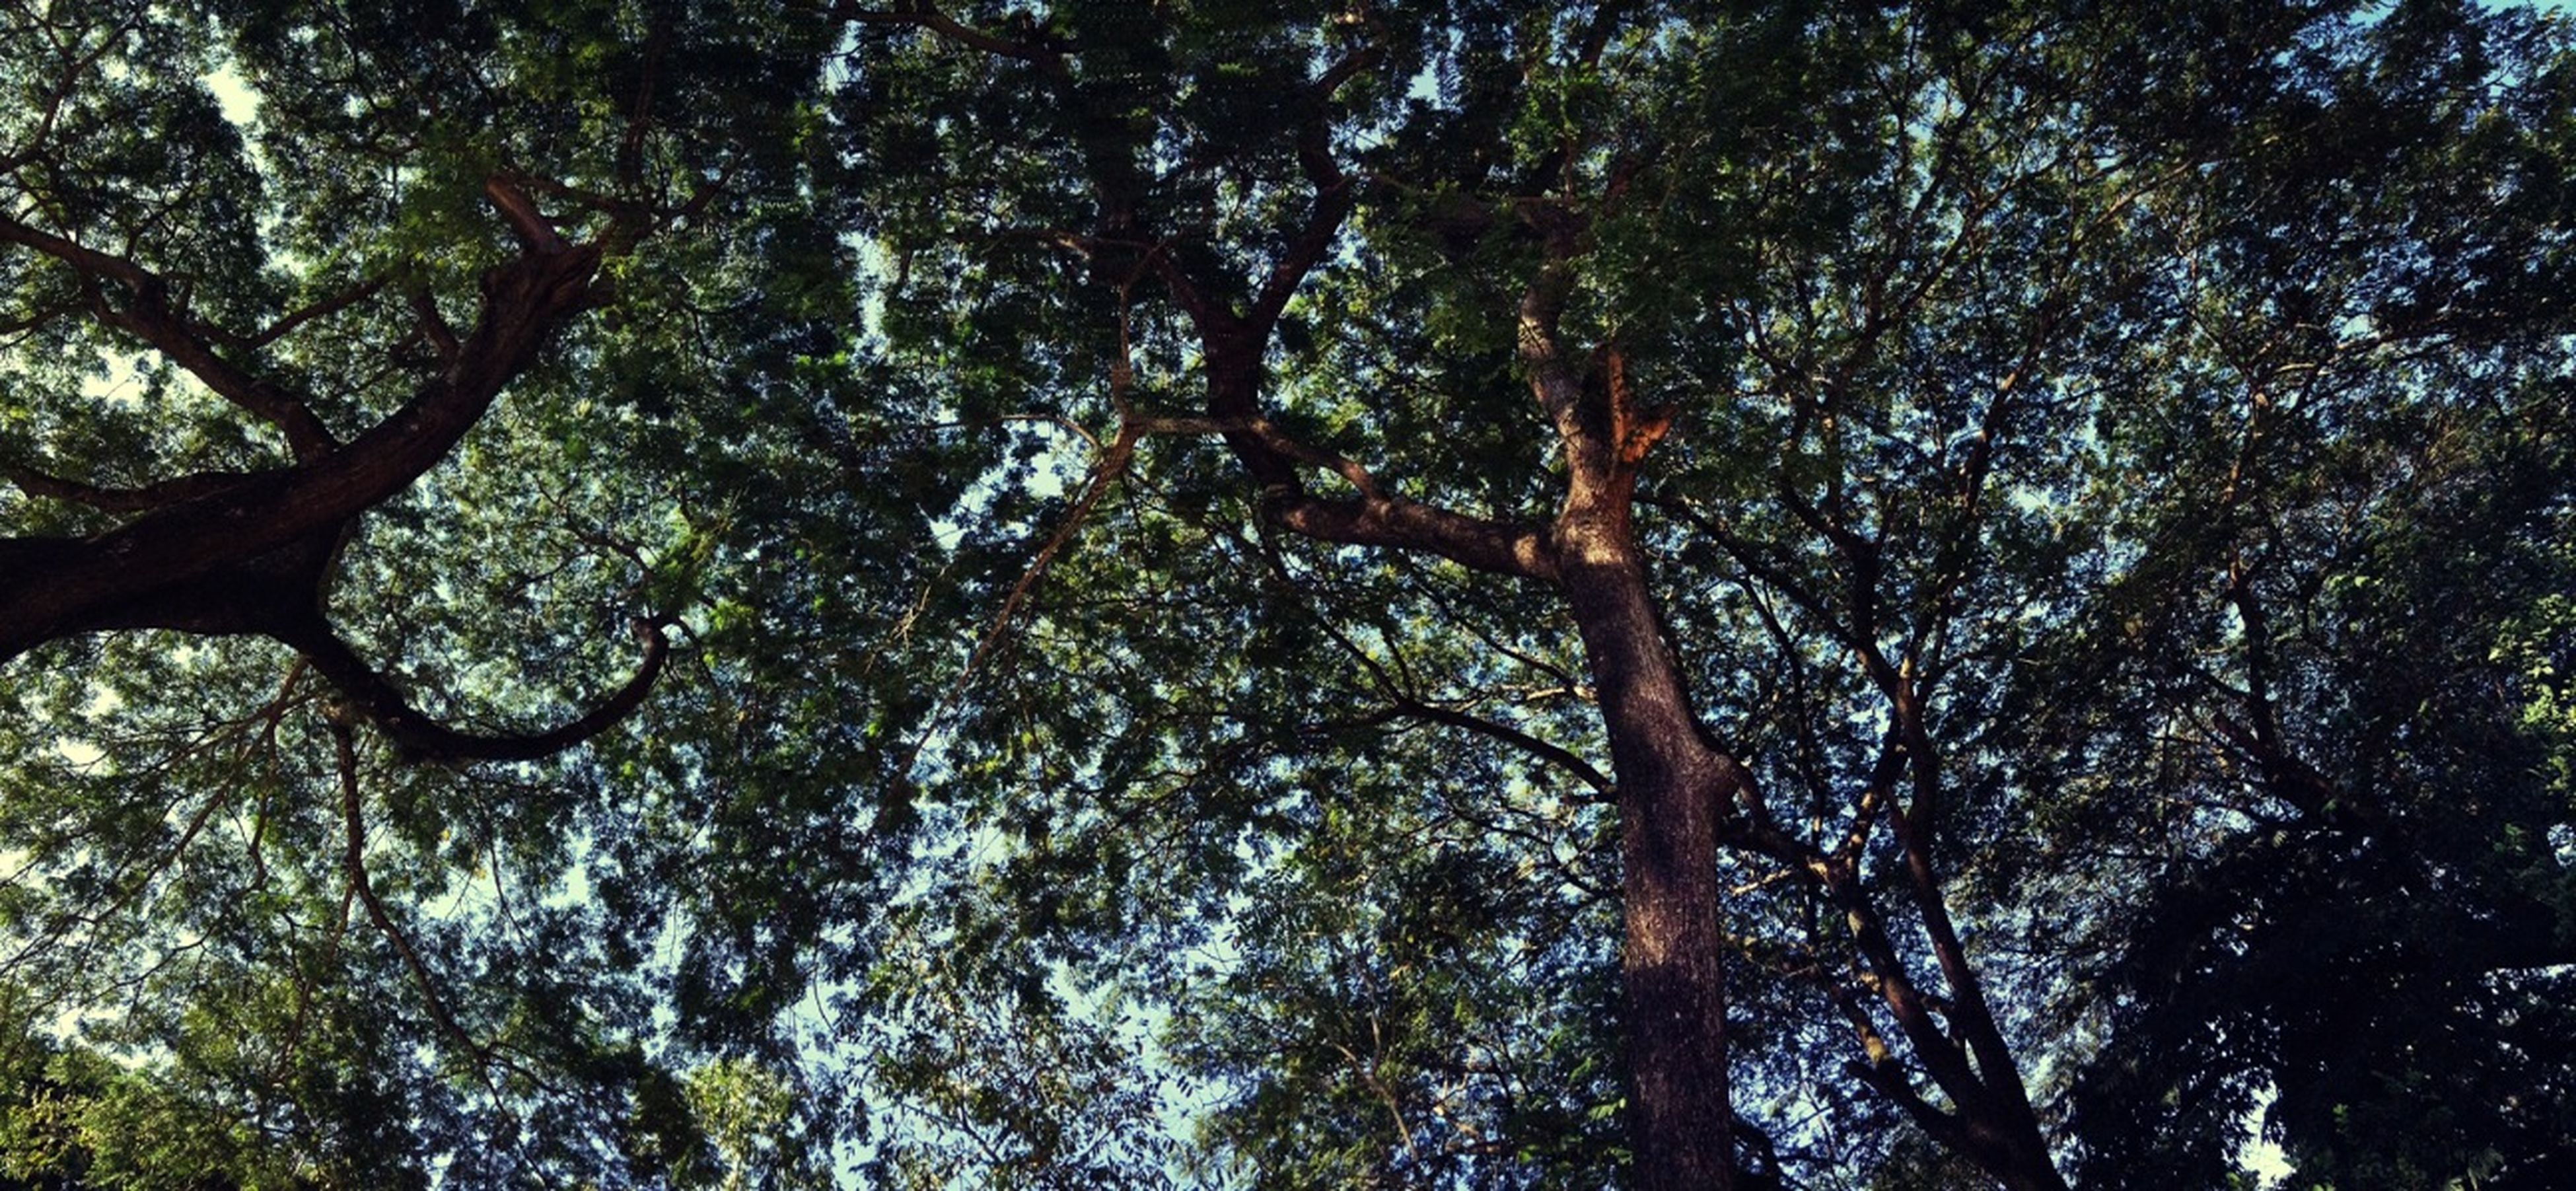 tree, low angle view, growth, forest, tranquility, nature, branch, tree trunk, beauty in nature, tranquil scene, woodland, day, scenics, outdoors, no people, sky, green color, backgrounds, full frame, sunlight